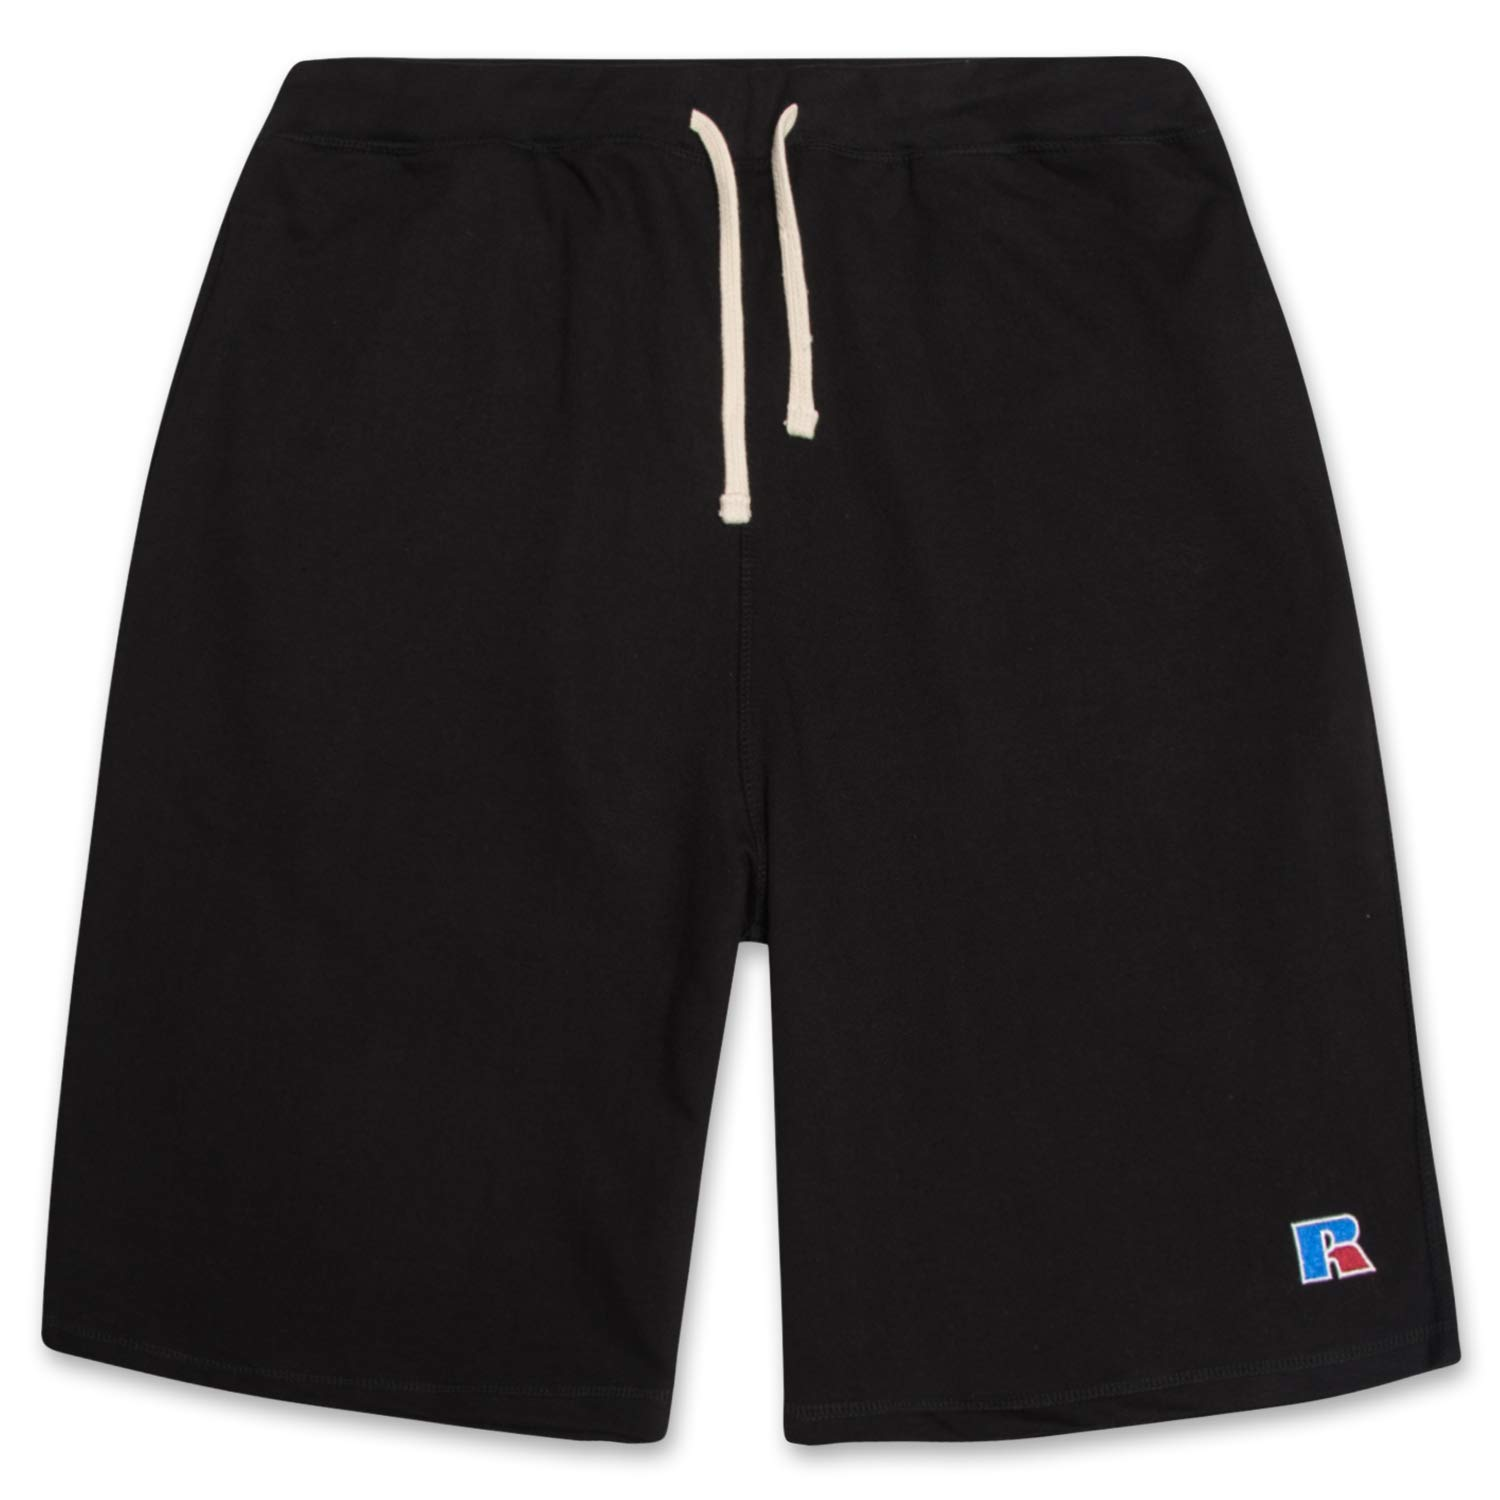 Russell Big and Tall Mens French Terry Athletic Shorts with Heritage R Embriodered Logo